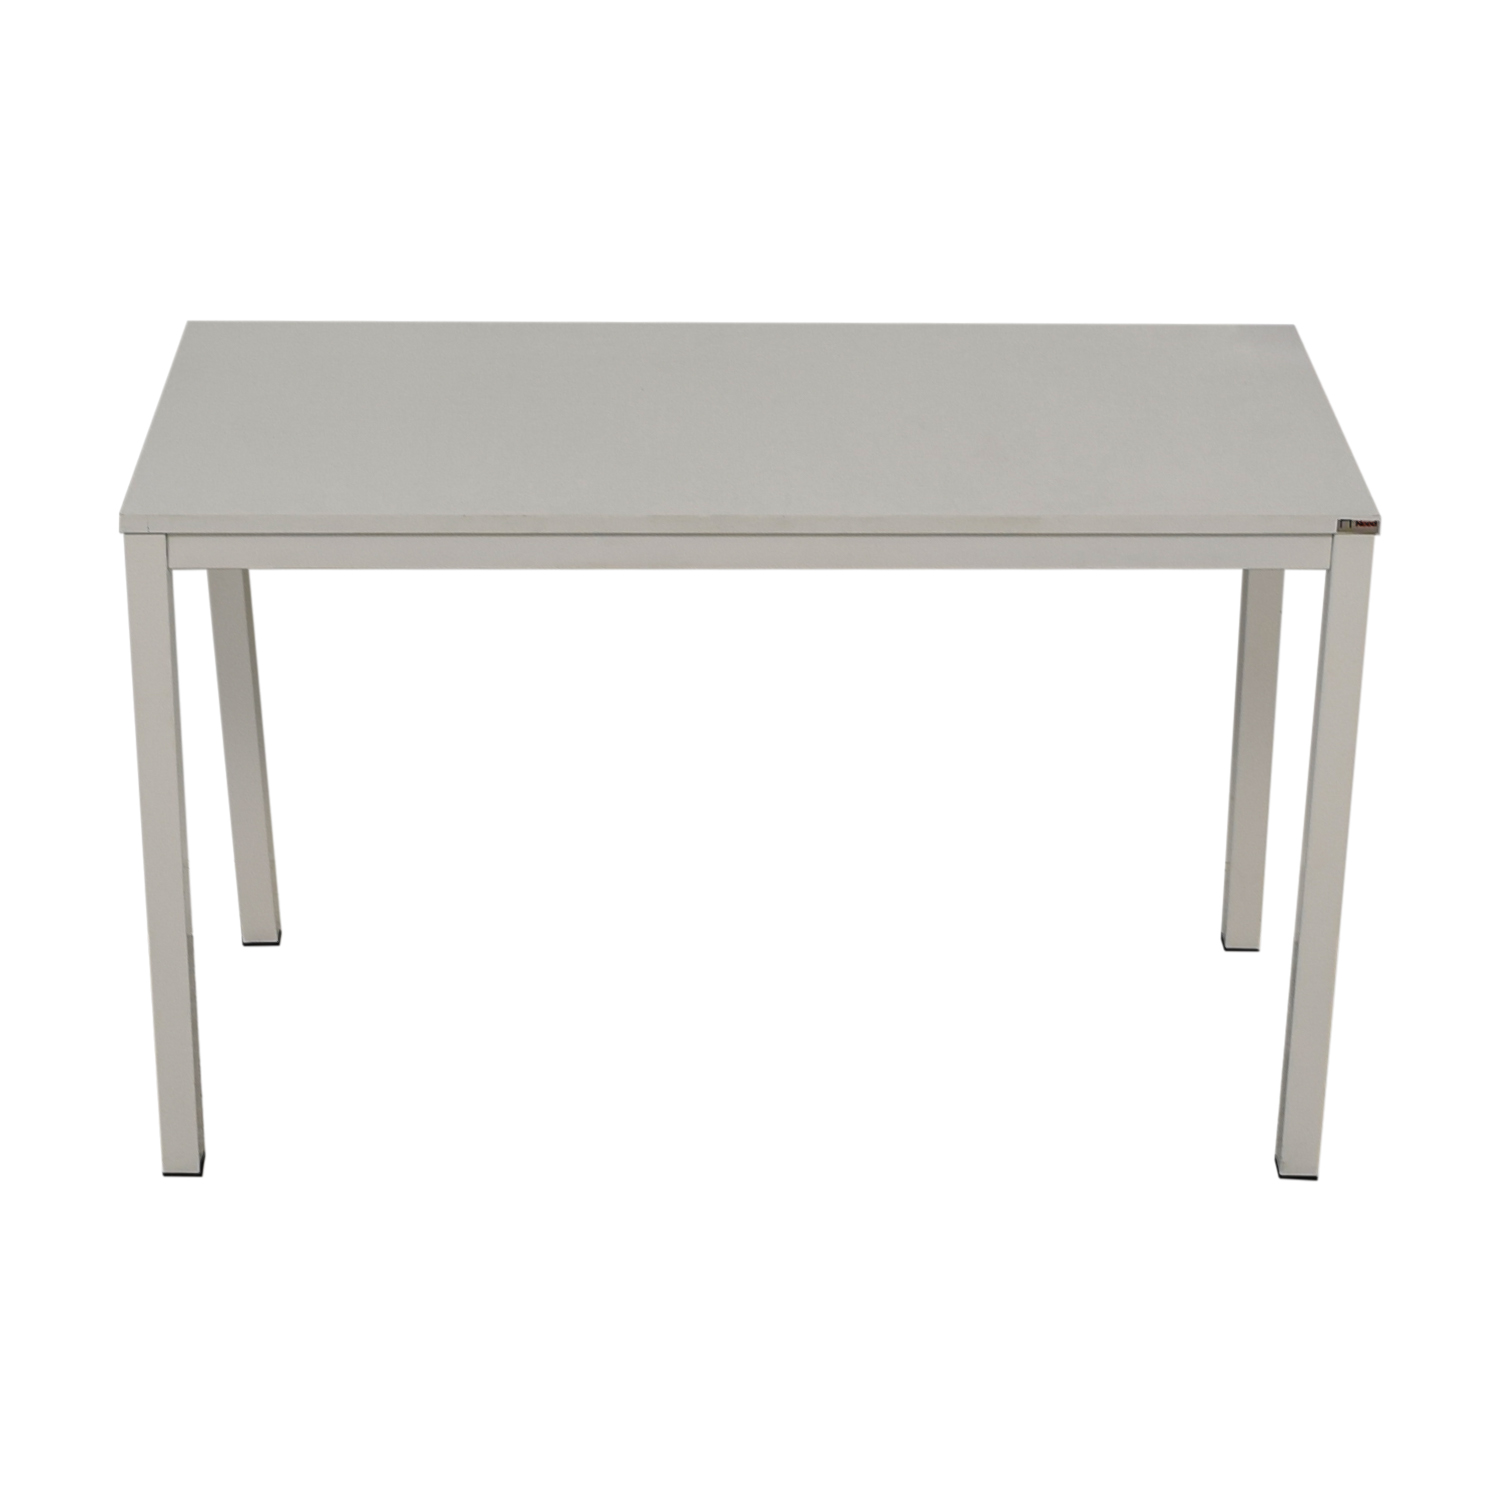 Need Need White Office Desk dimensions